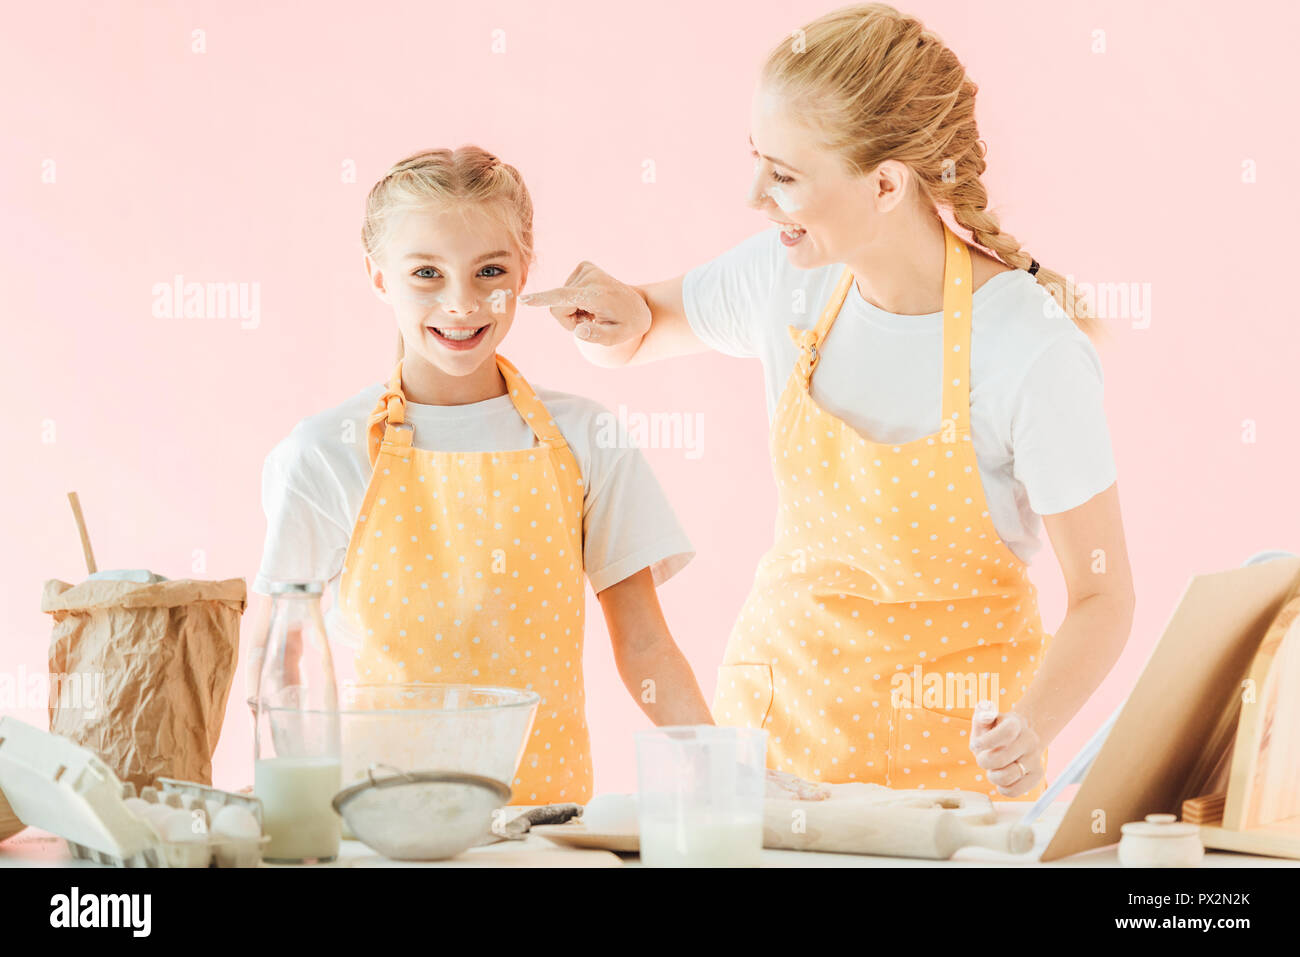 Smiling mother and daughter avec de la farine sur la cuisson des visages sur Rose Photo Stock